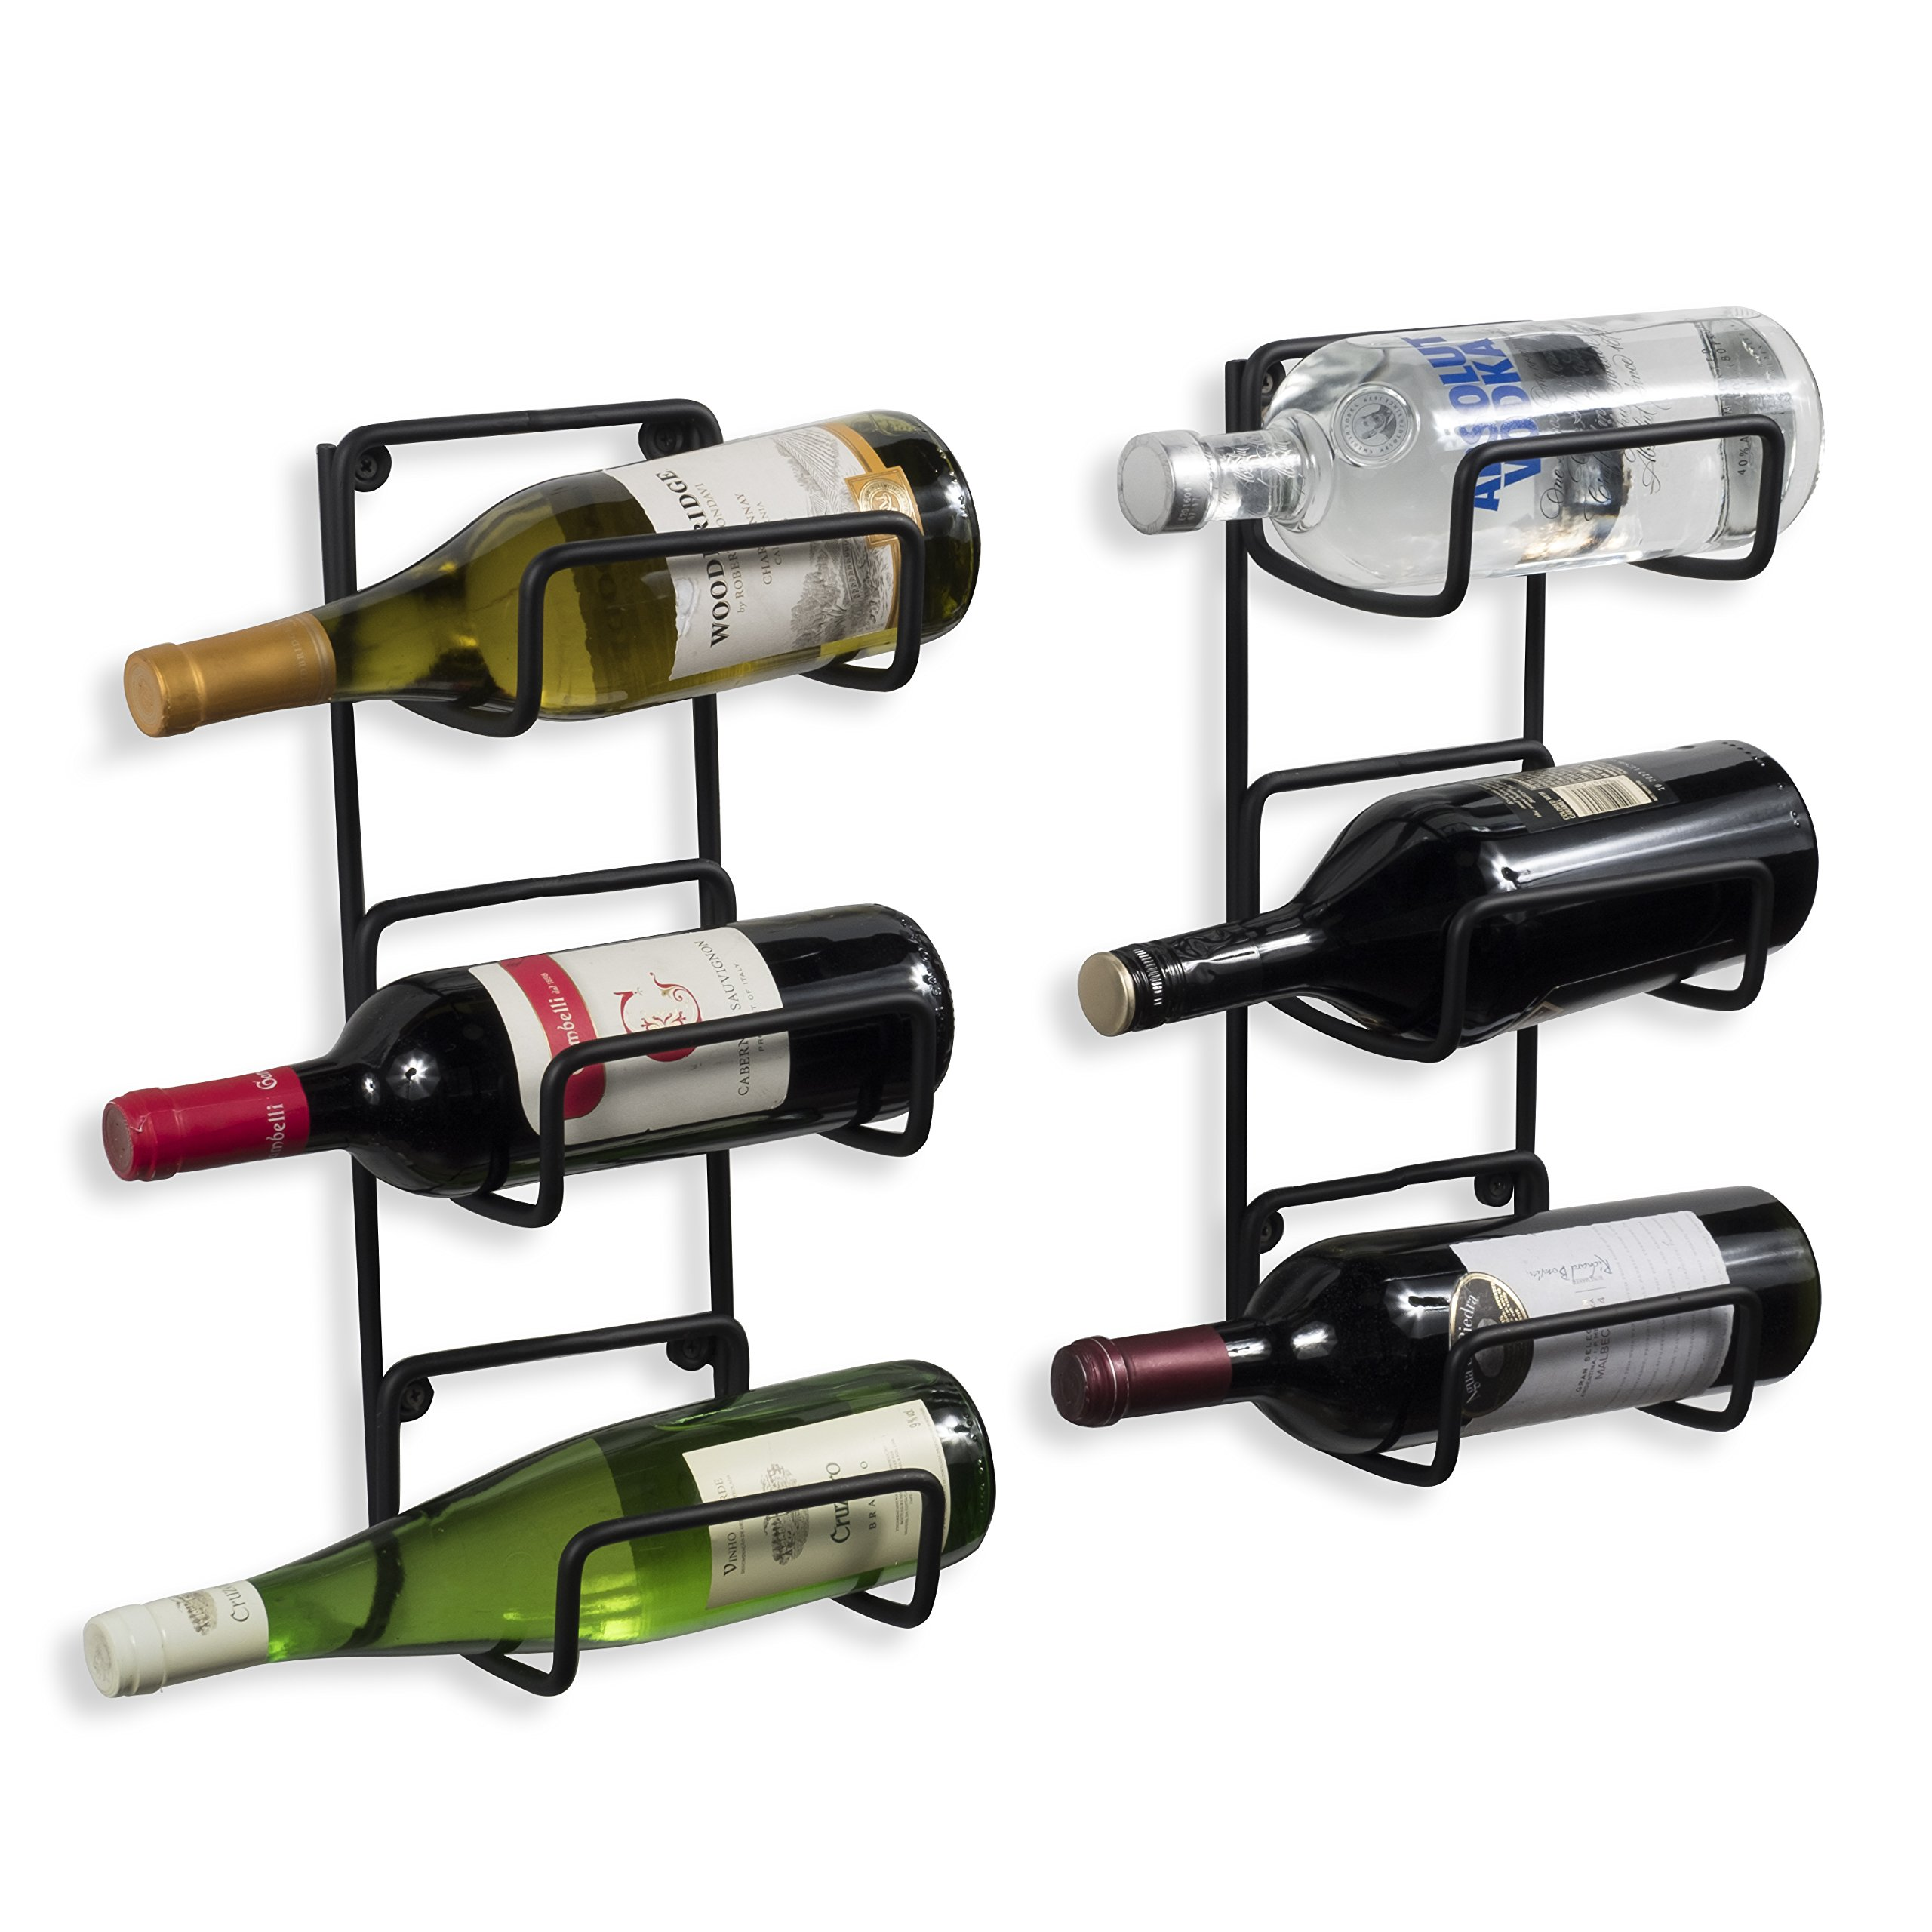 Wallniture Wrought Iron Wine Rack – Rustic Style 6 Bottle Holder Display in 2 Parts Black